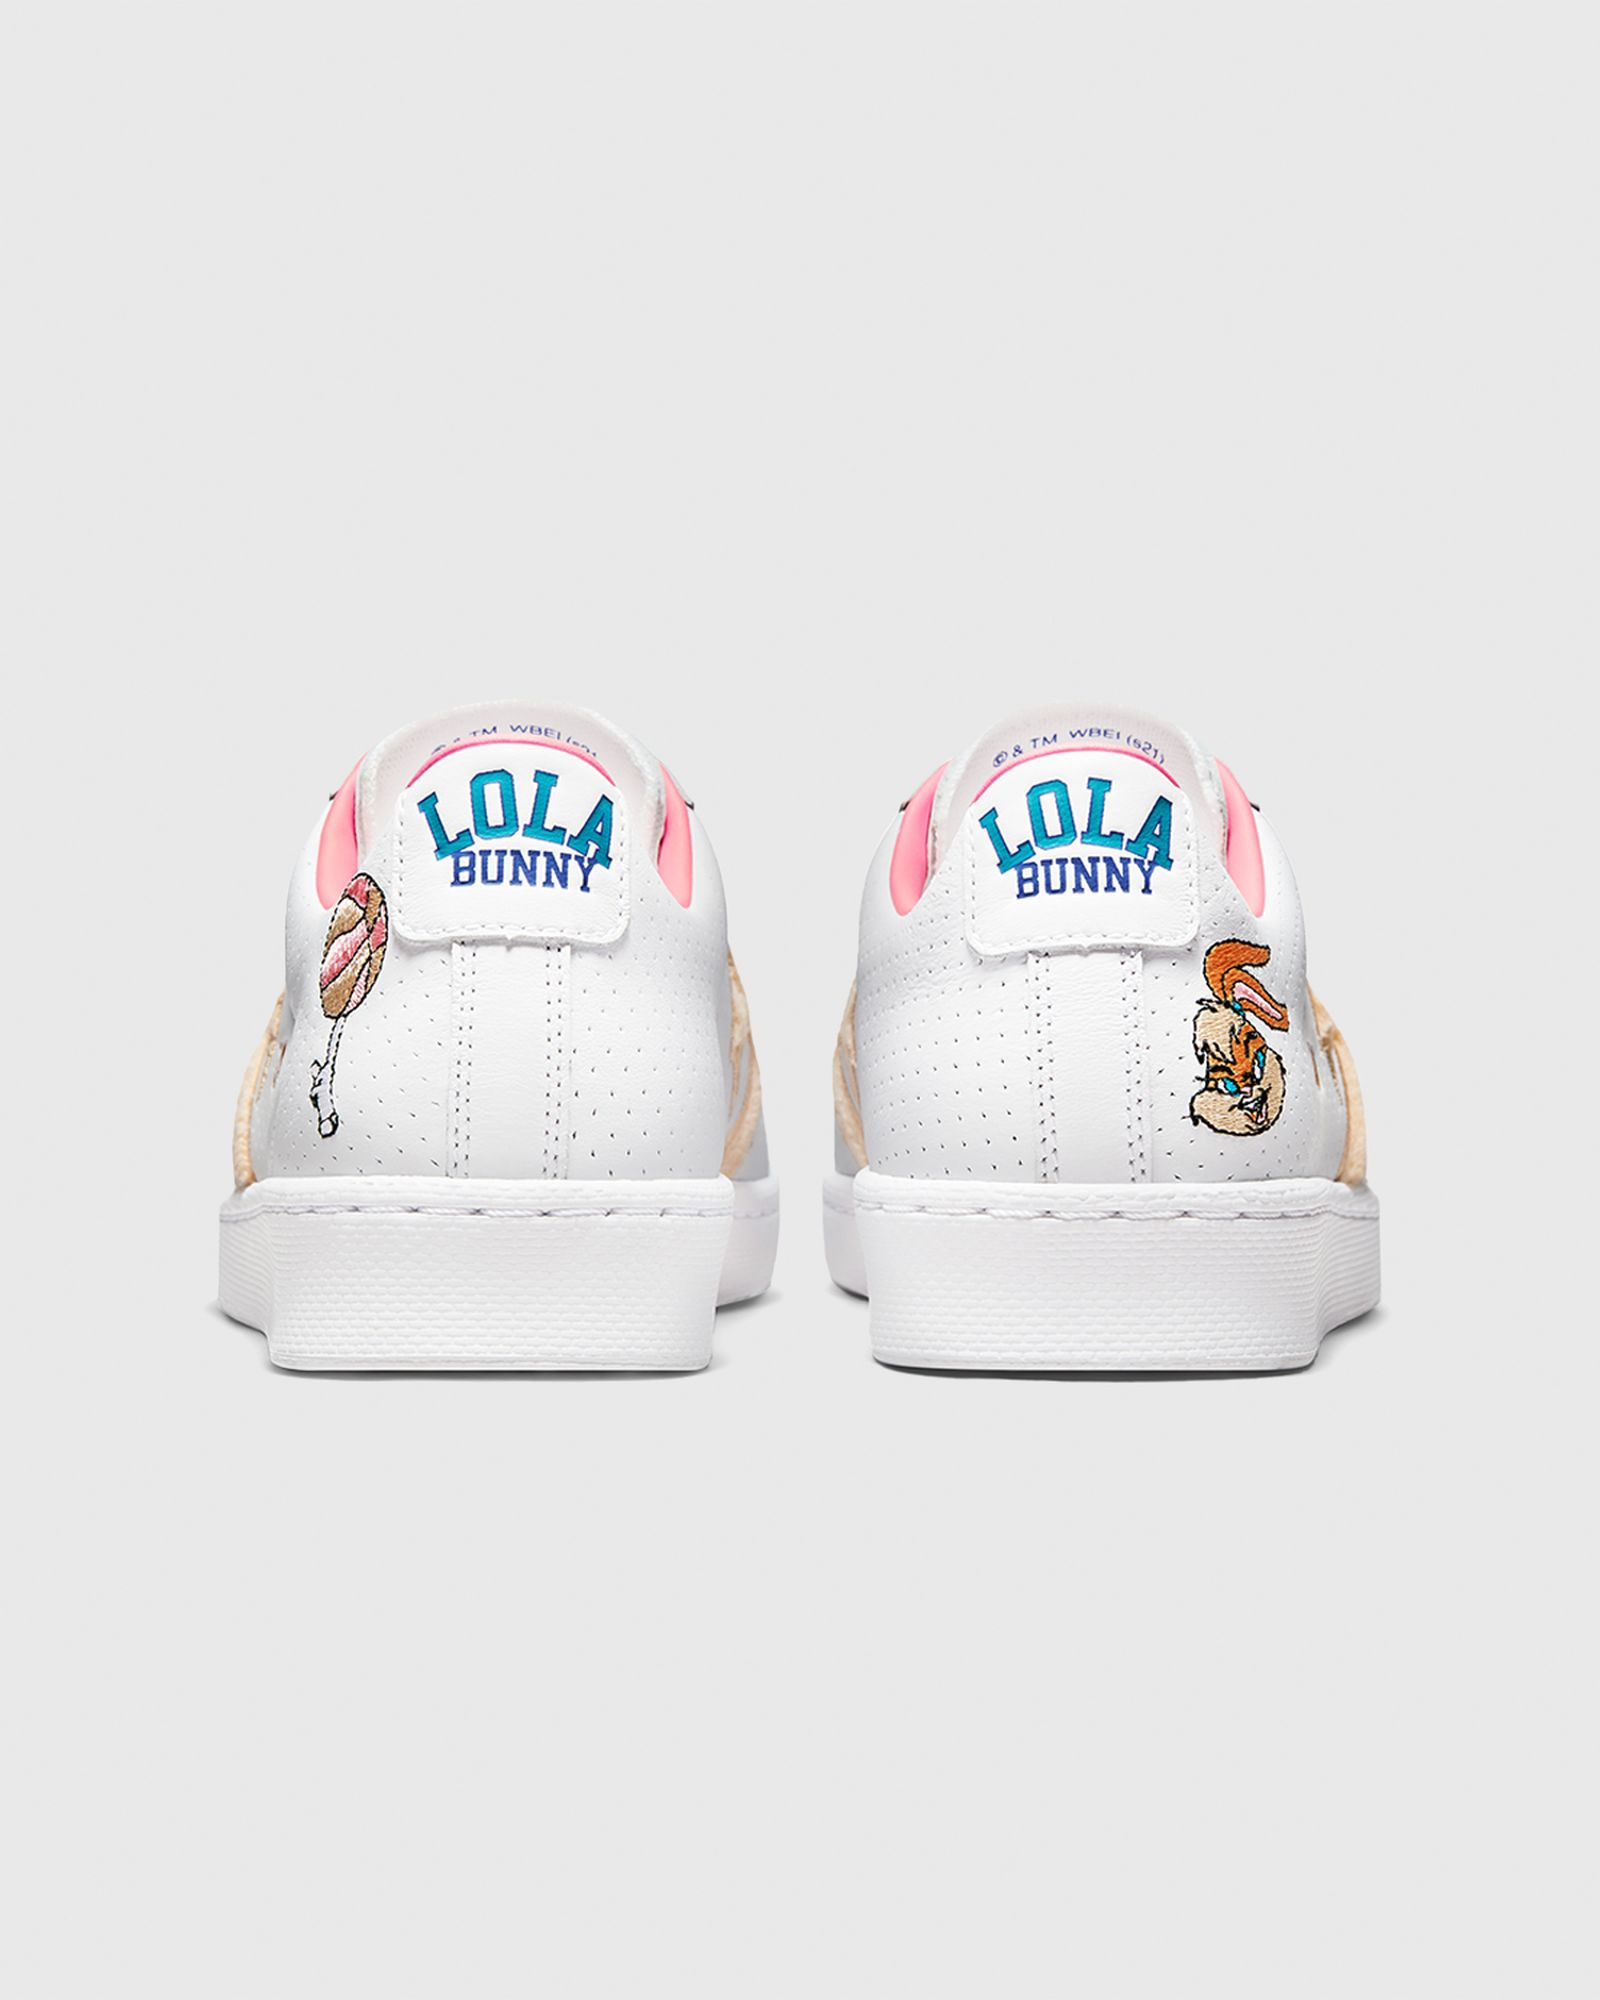 converse-space-jam-2-pack-release-date-price-lola-bunny-06